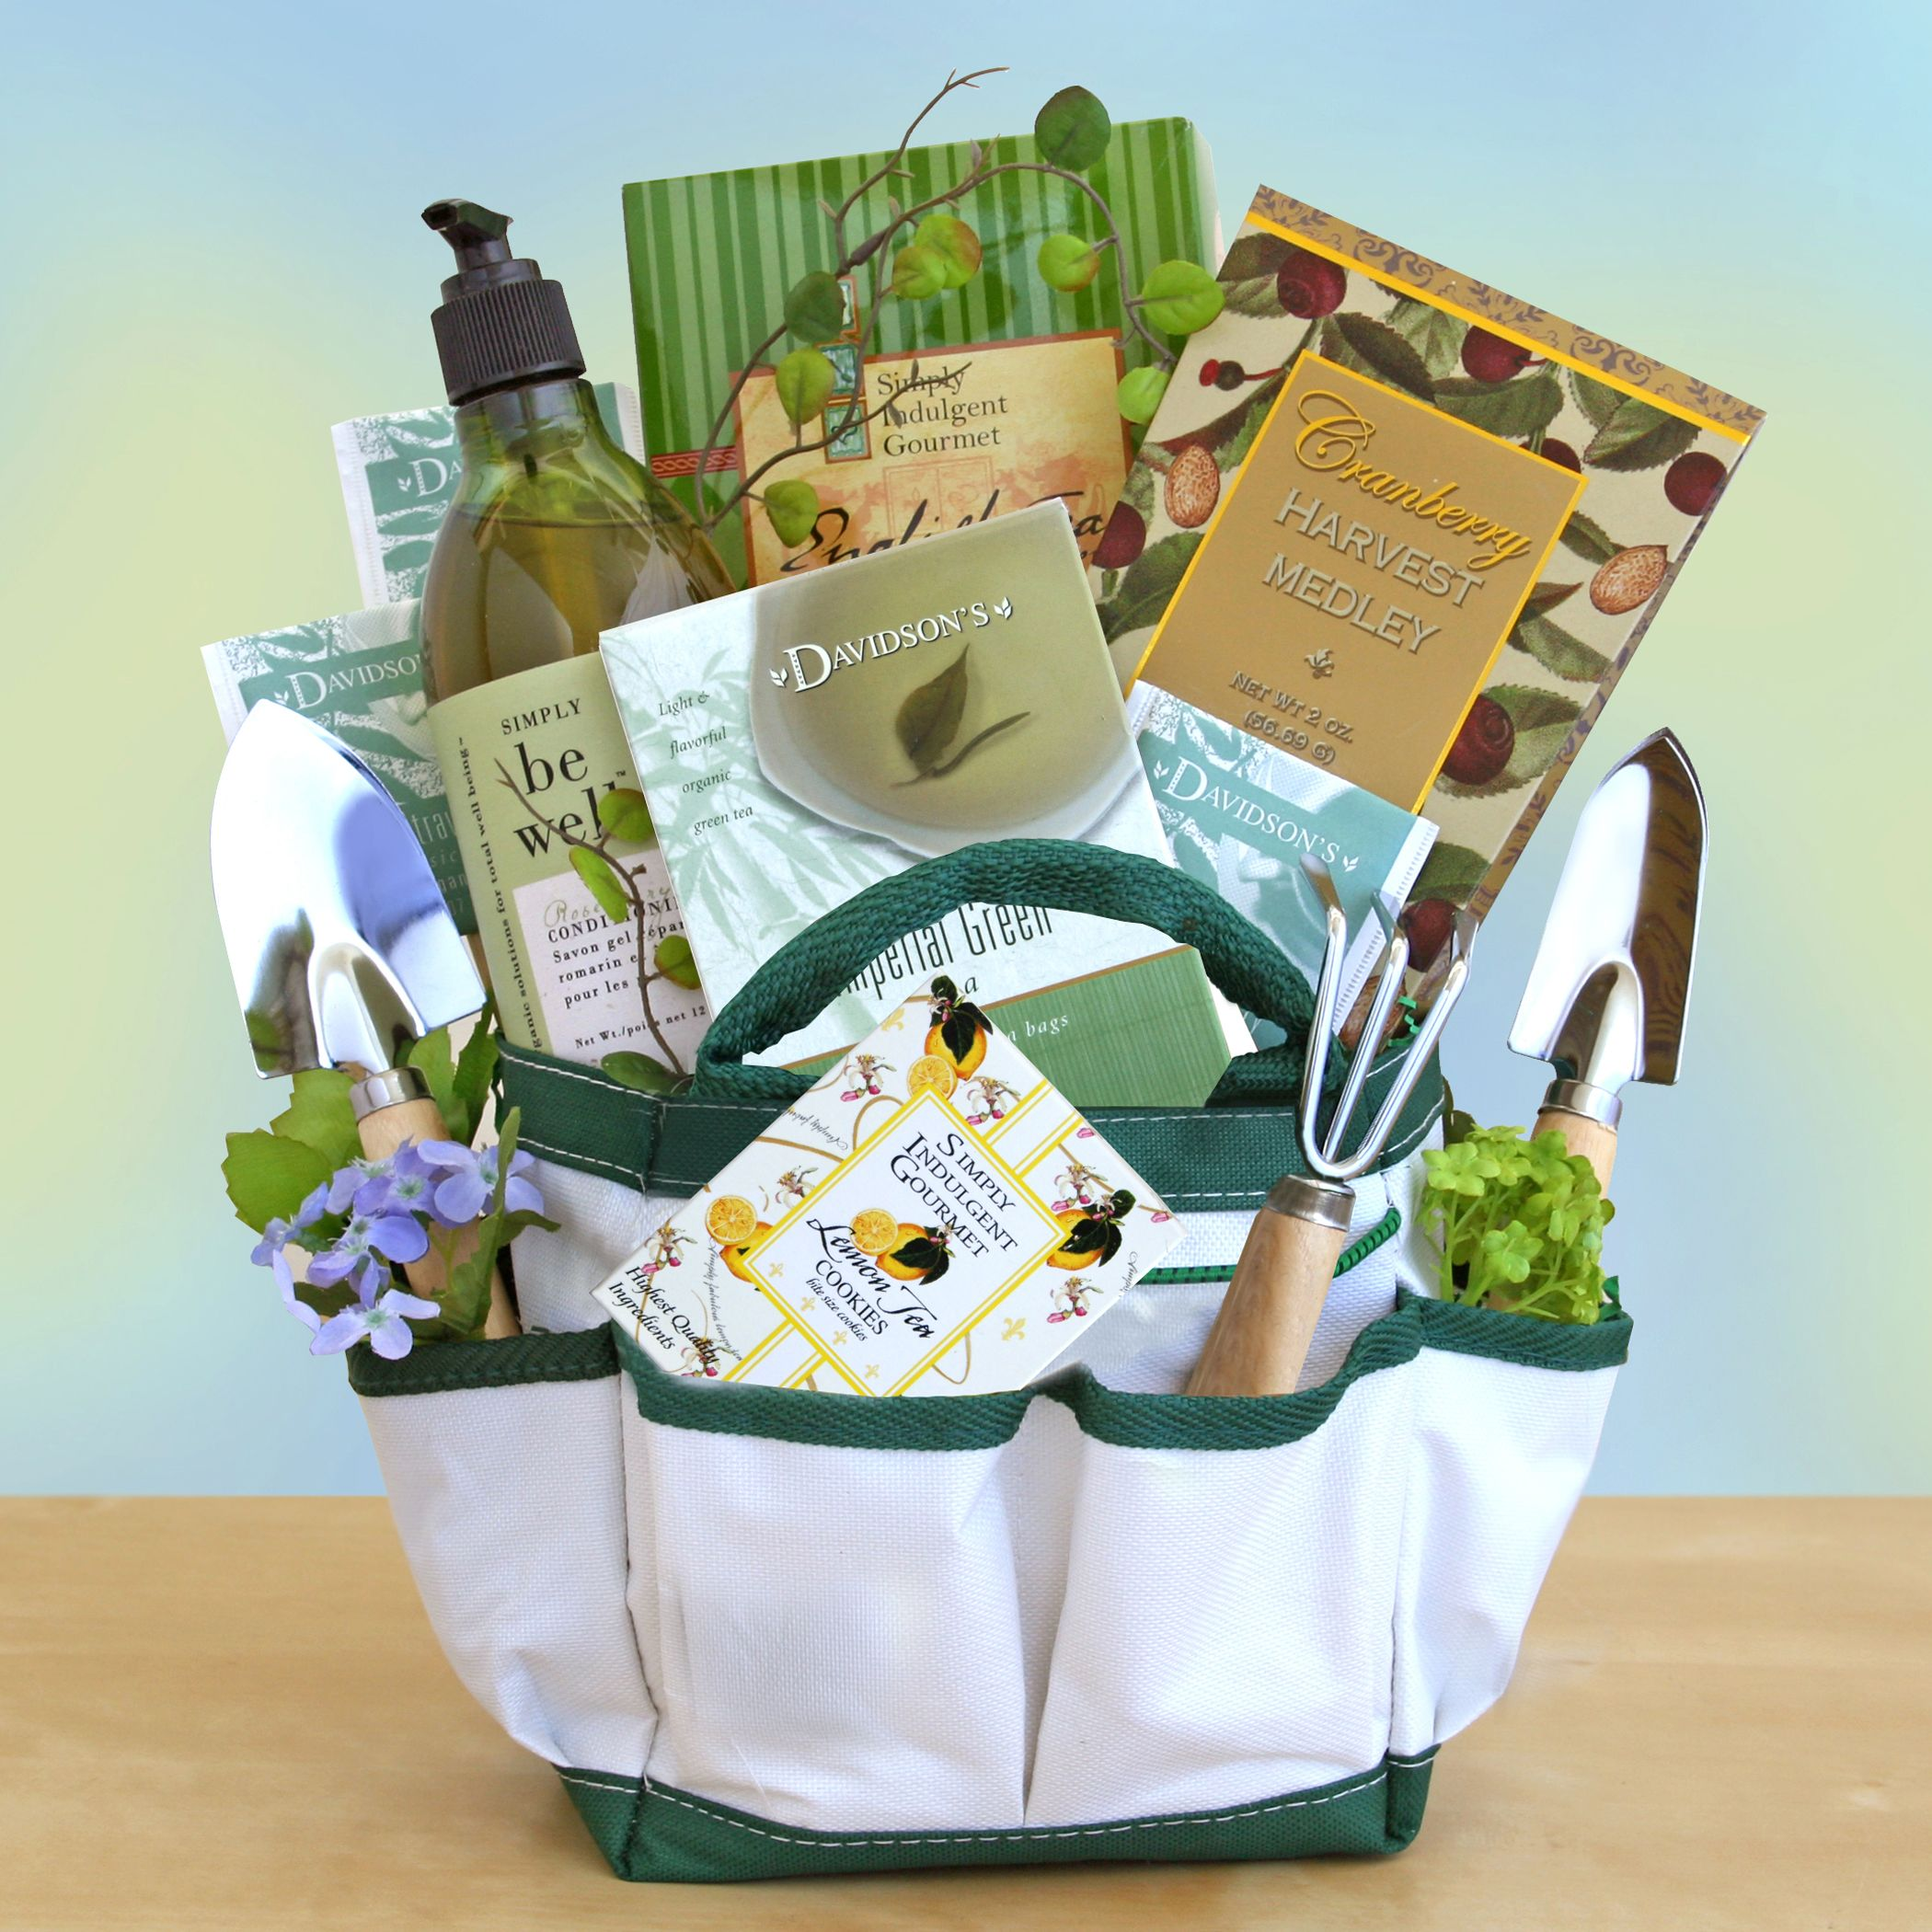 Gardener's Delights 59.99 … Mother's day gift baskets